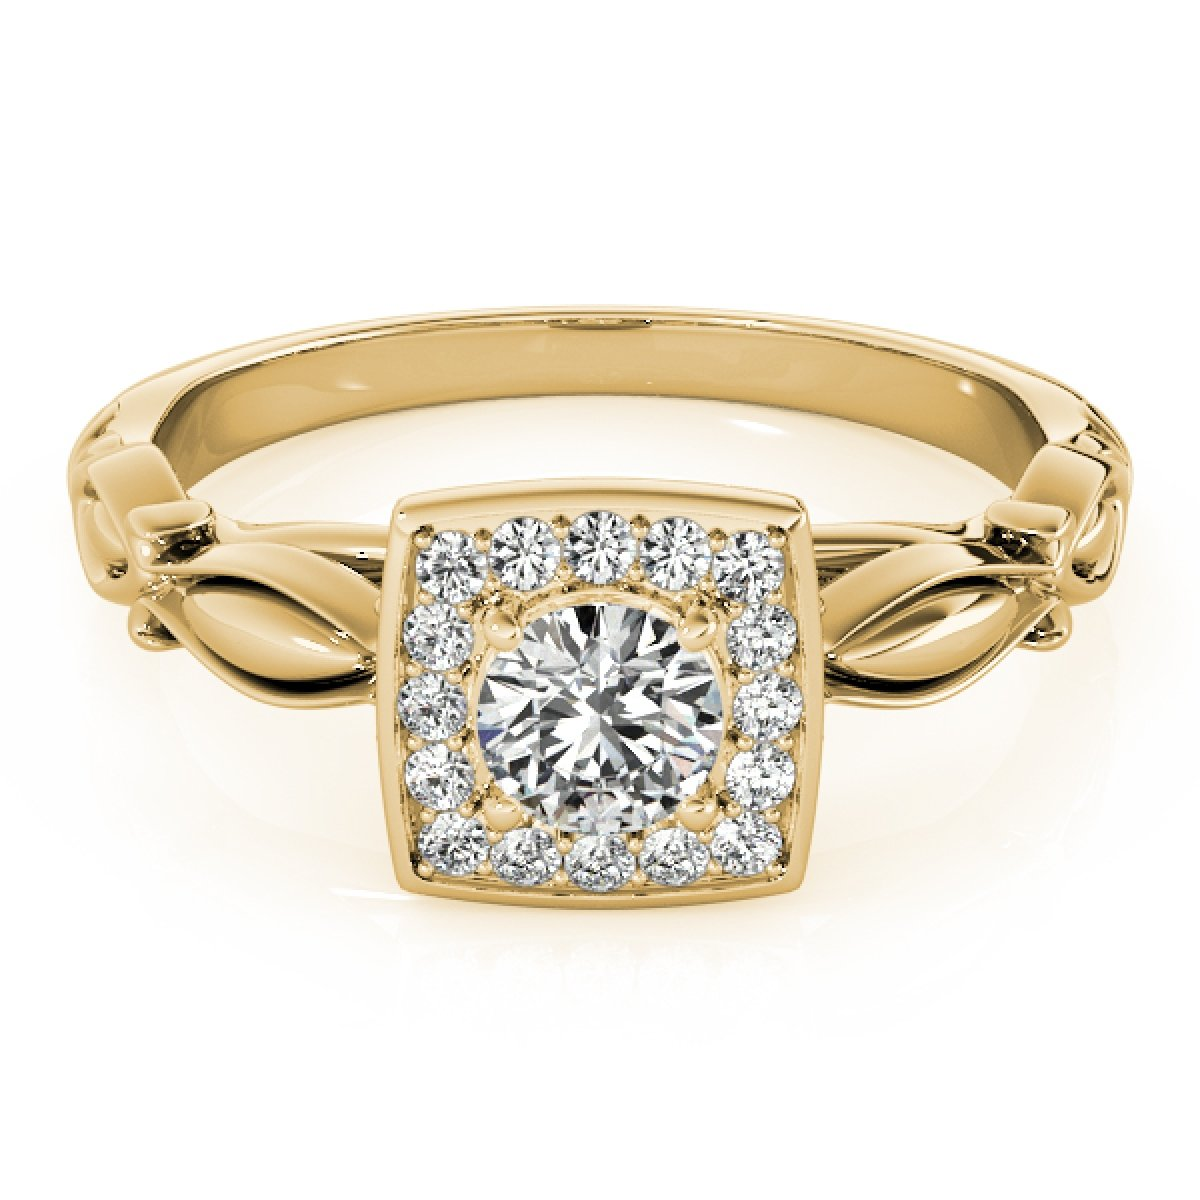 0.50 Ct Diamond Halo Square Cut Engagement Ring In 14K Yellow Gold by MauliJewels (Image #2)